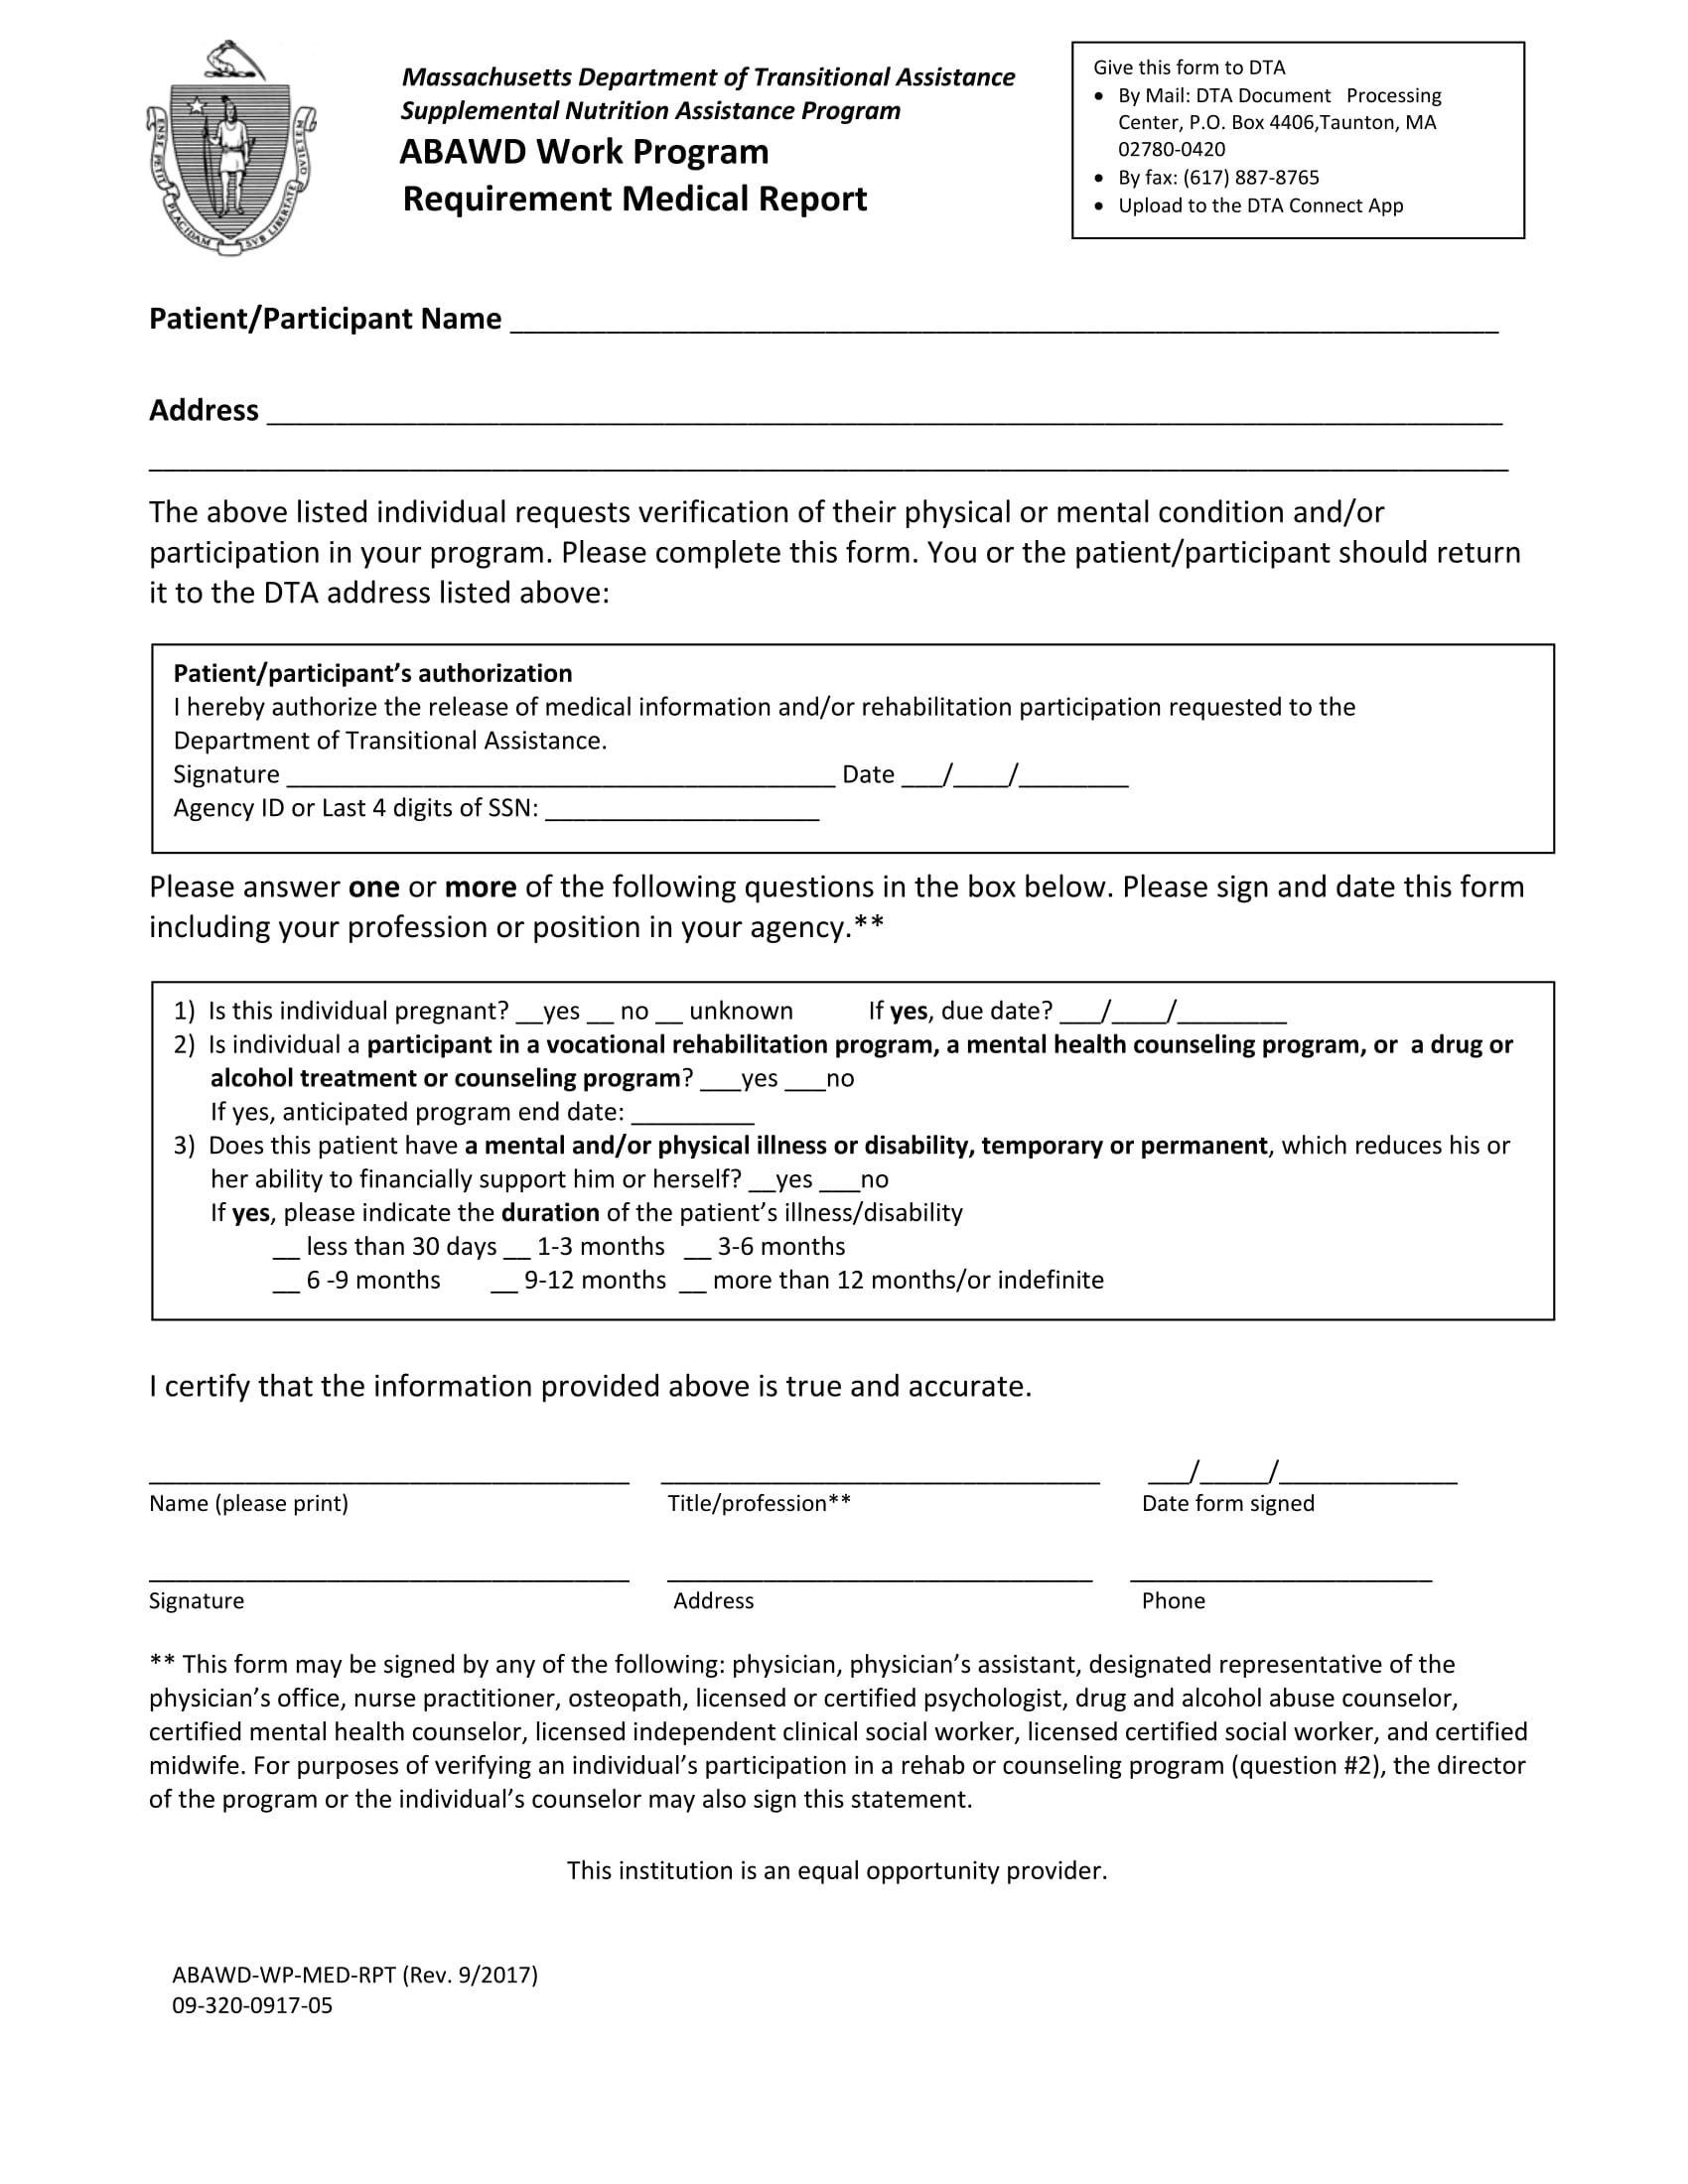 requirement medical report form 1